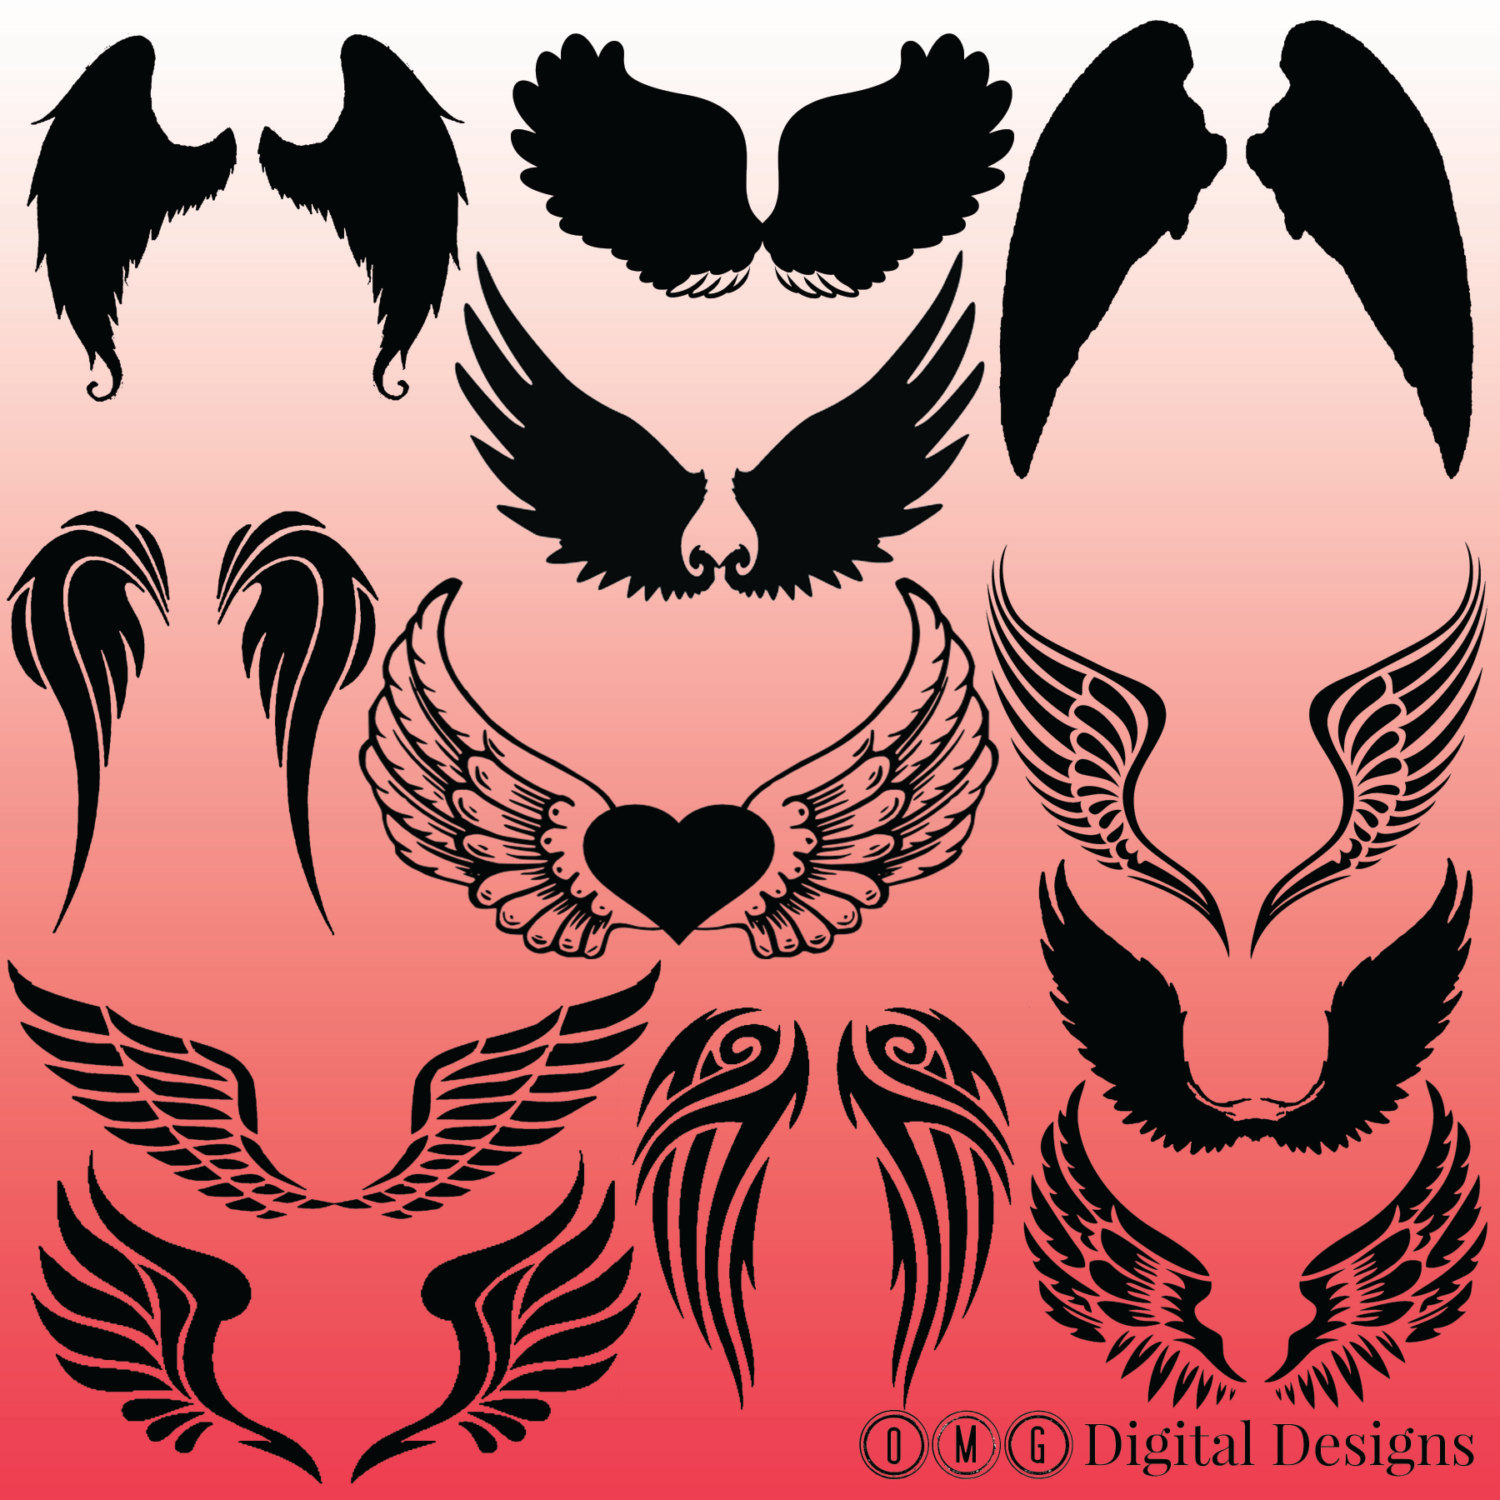 Wings silhouette collection (angel, wing, tribal).